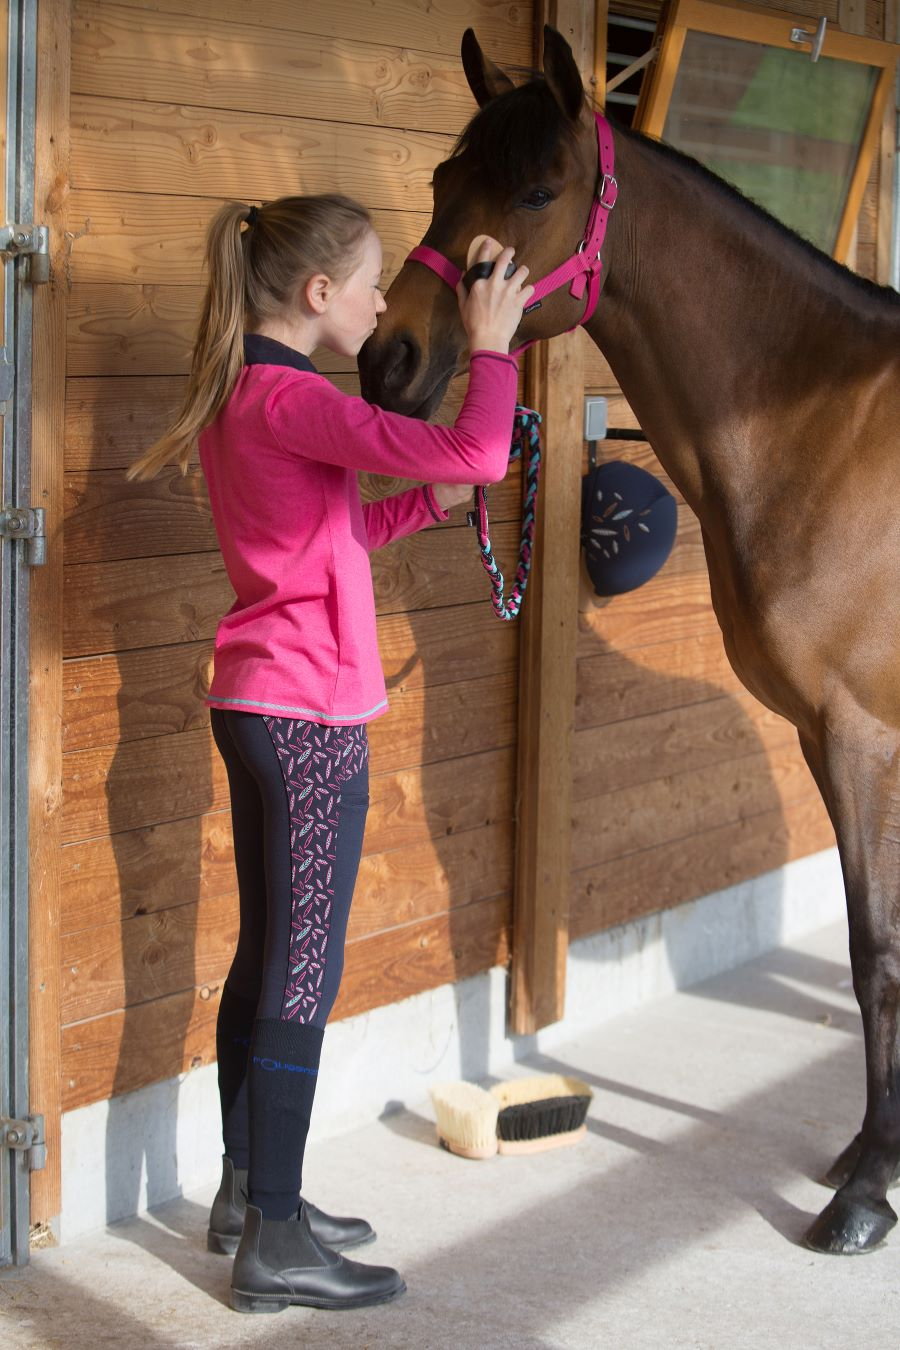 Grooming Tips To Make Your Horse Shine